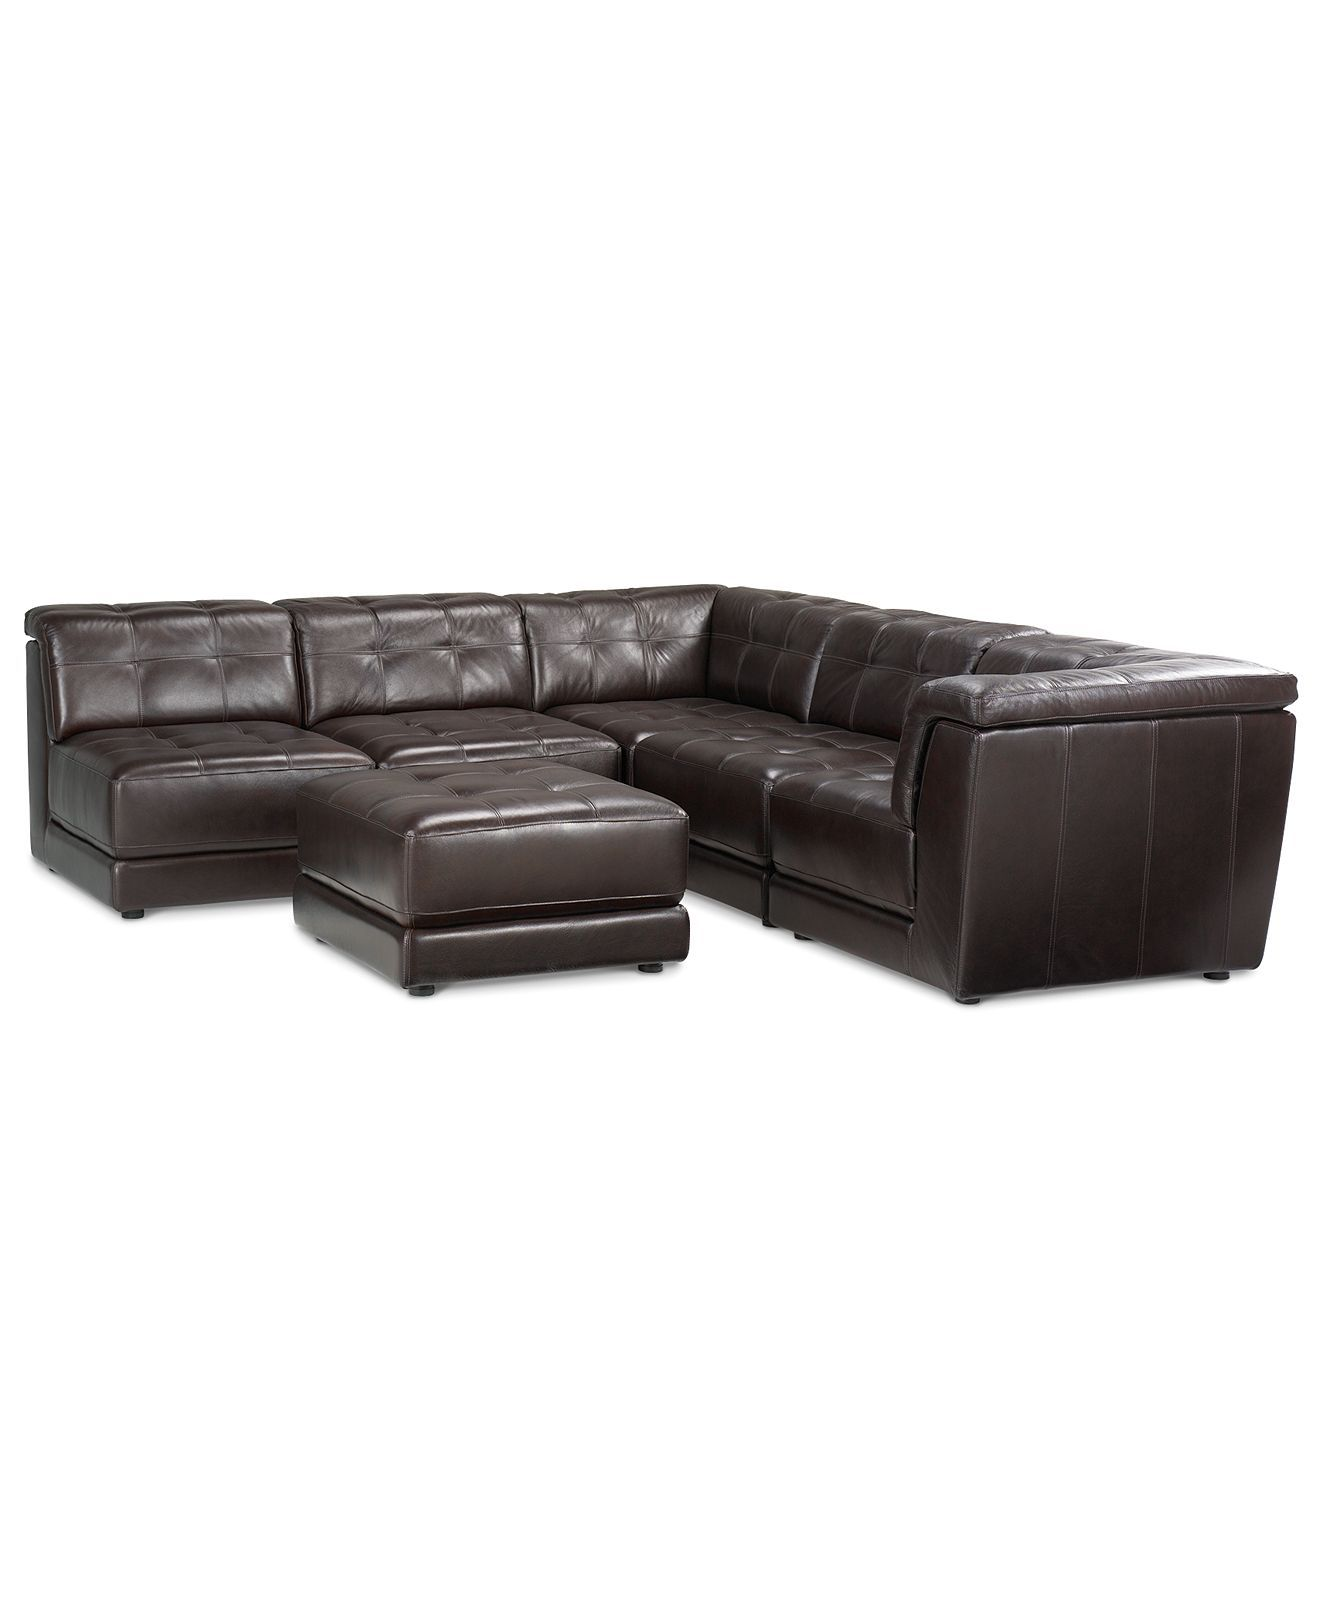 Macy\'s Stacey Leather Sectional Sofa, 6 piece modular (3 ...